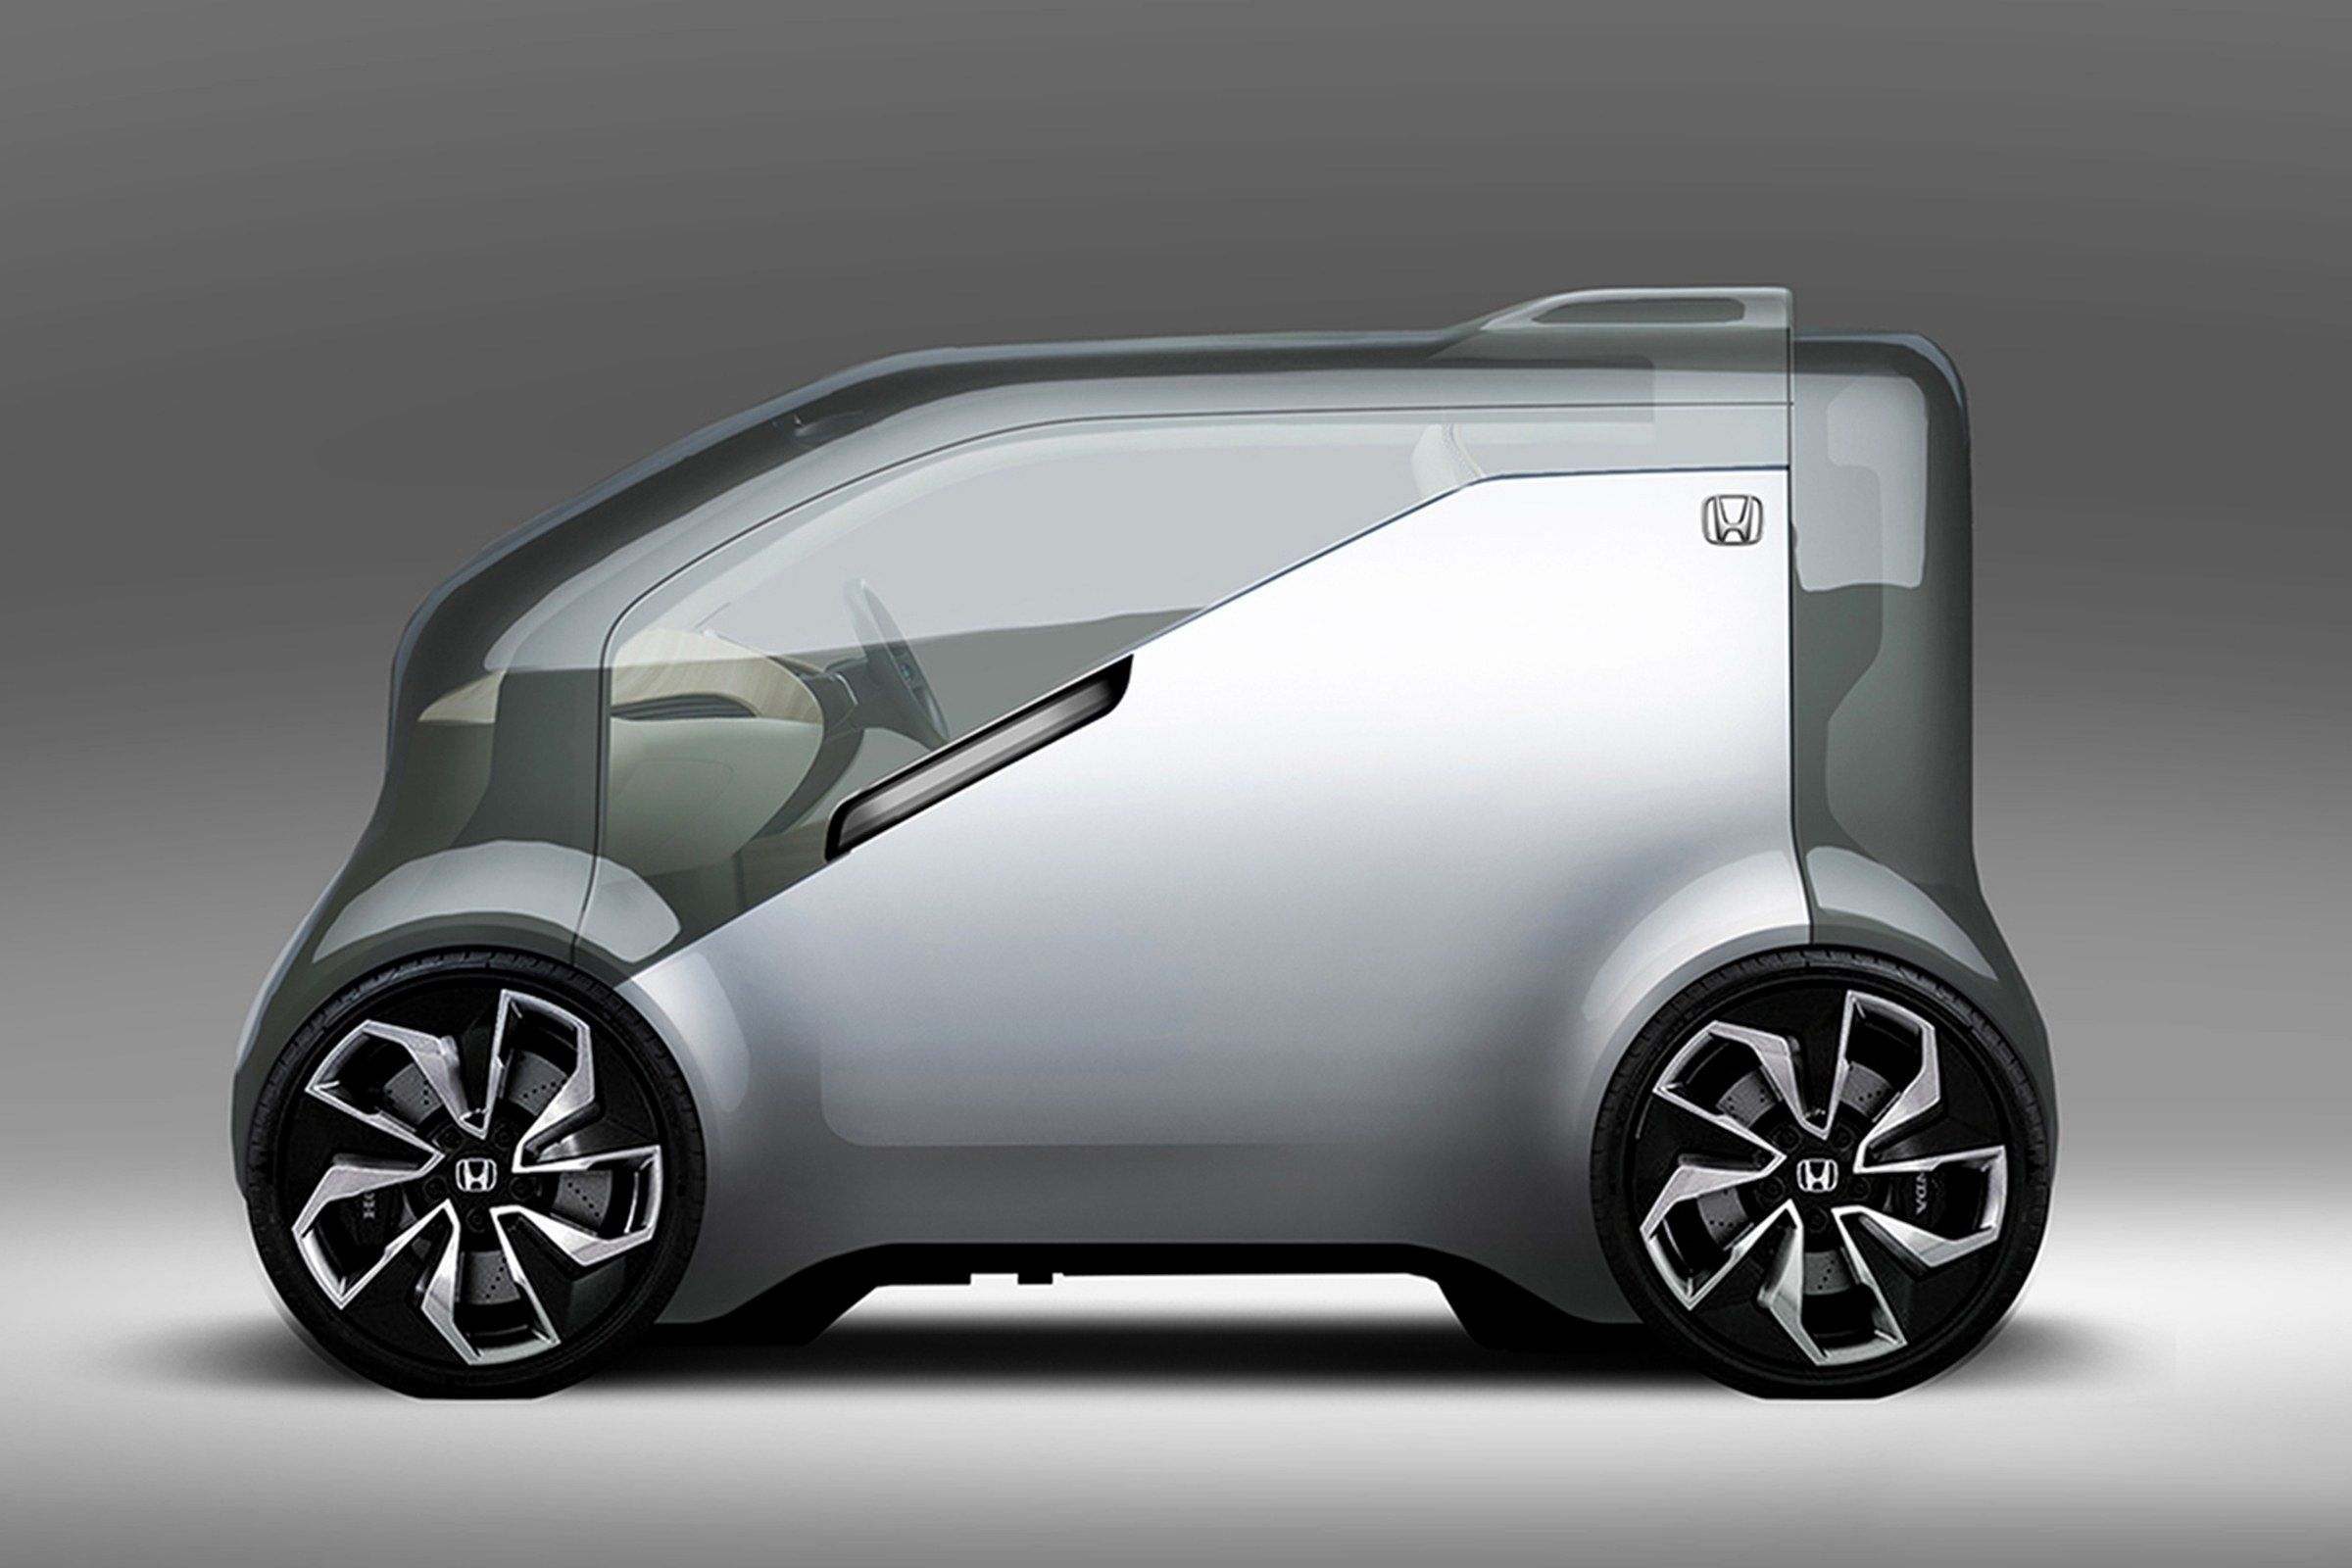 Honda And Toyota S New Concept Cars Look Like Something Out Of A